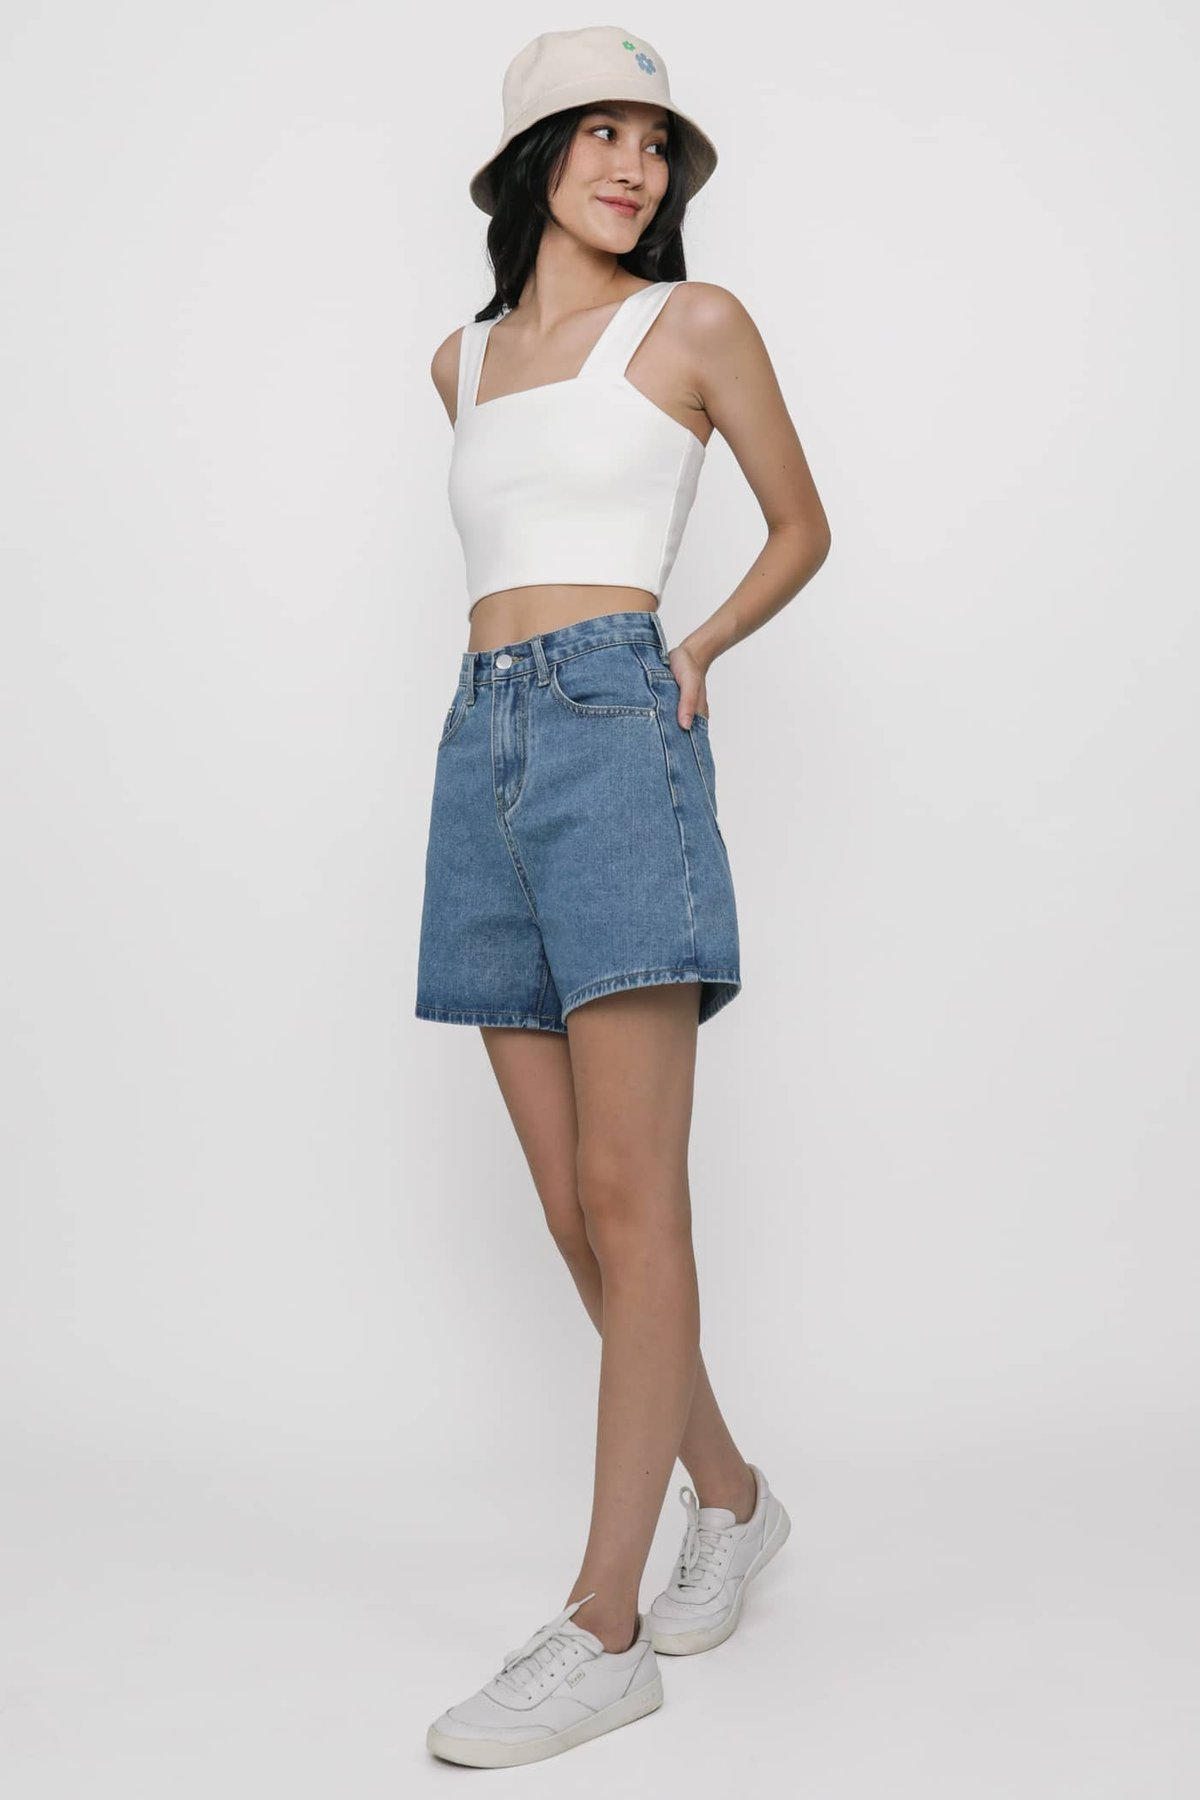 Abby Basic Cropped Top (White)